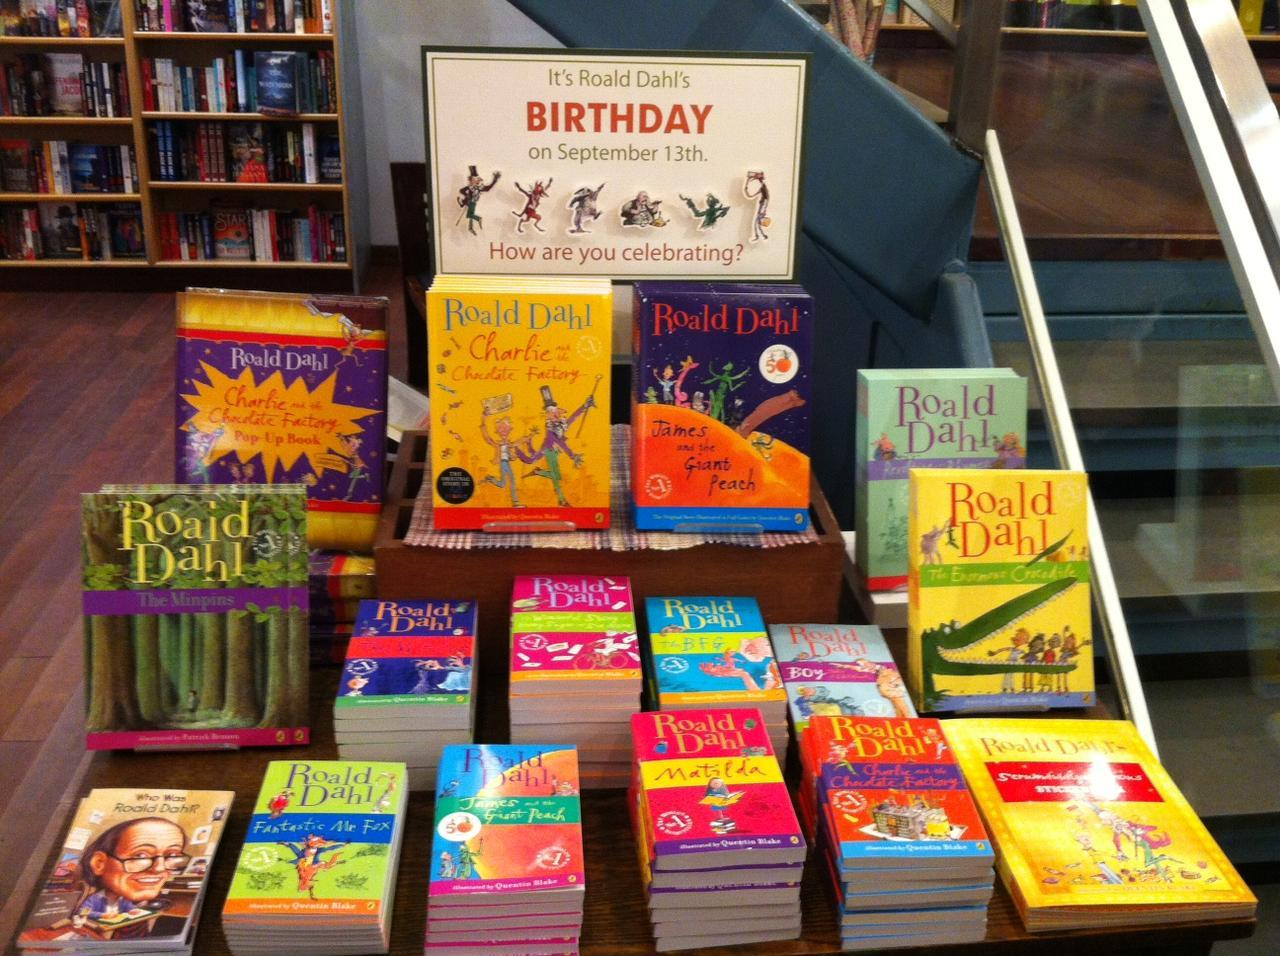 Happy Birthday Roald Dahl! Our childhoods would have been bland and sugar-coated without you.